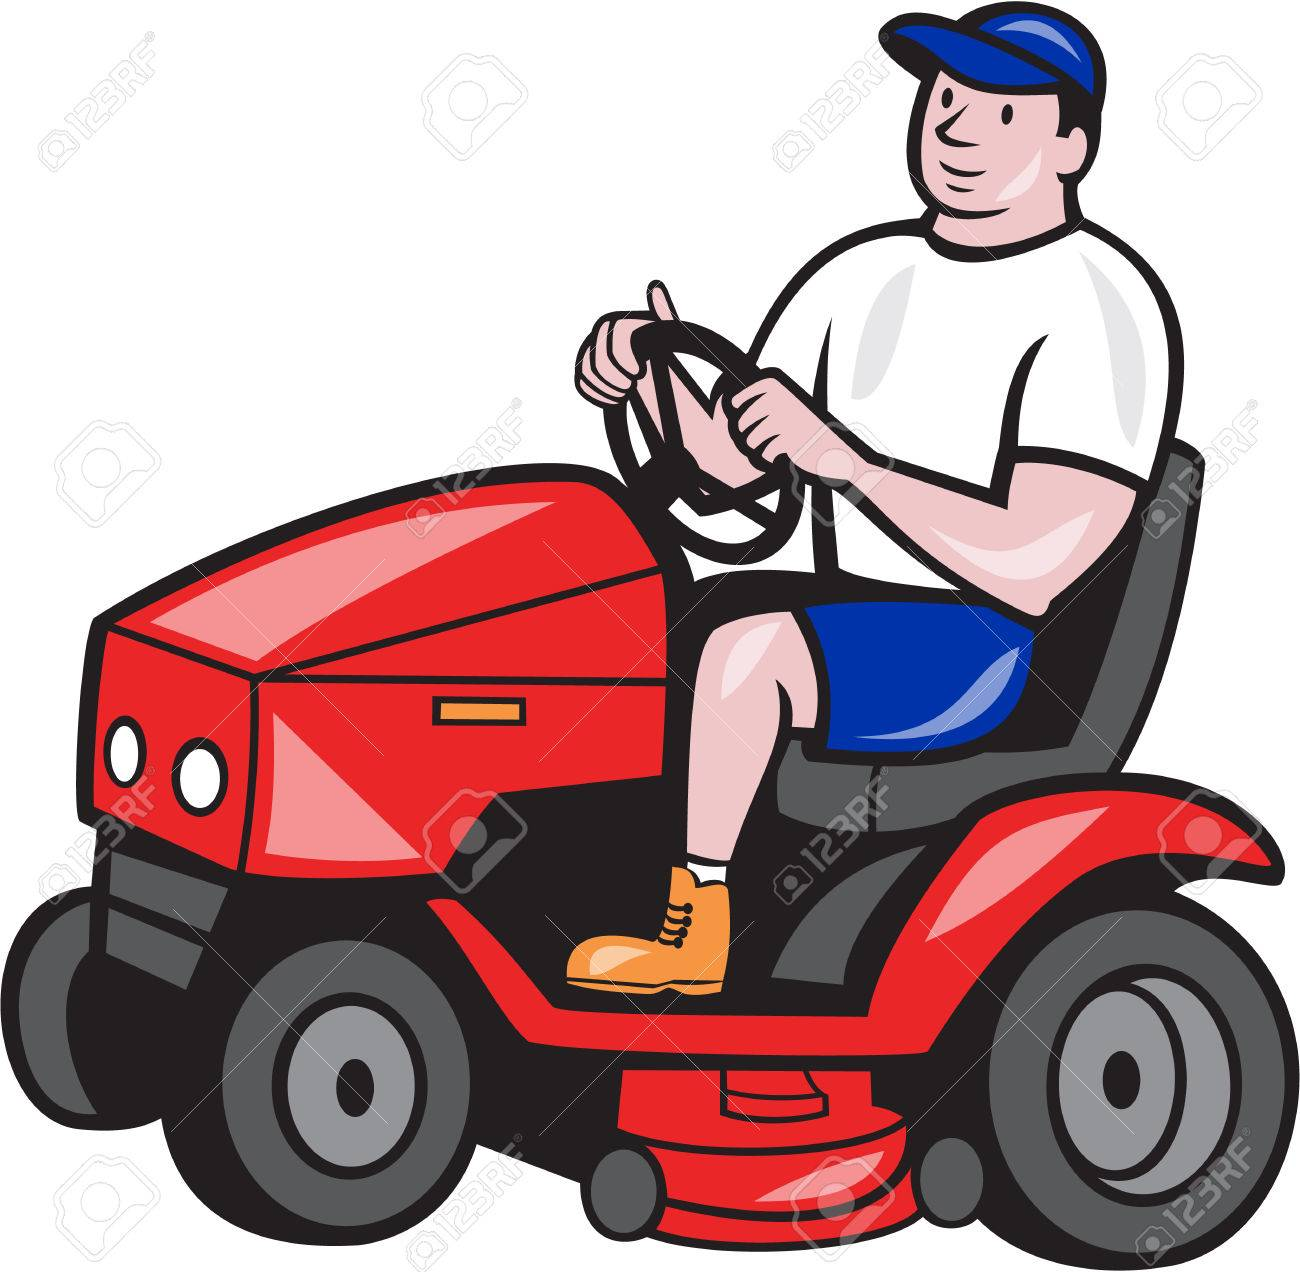 Riding Lawn Mower Illustration Riding Lawn Mower